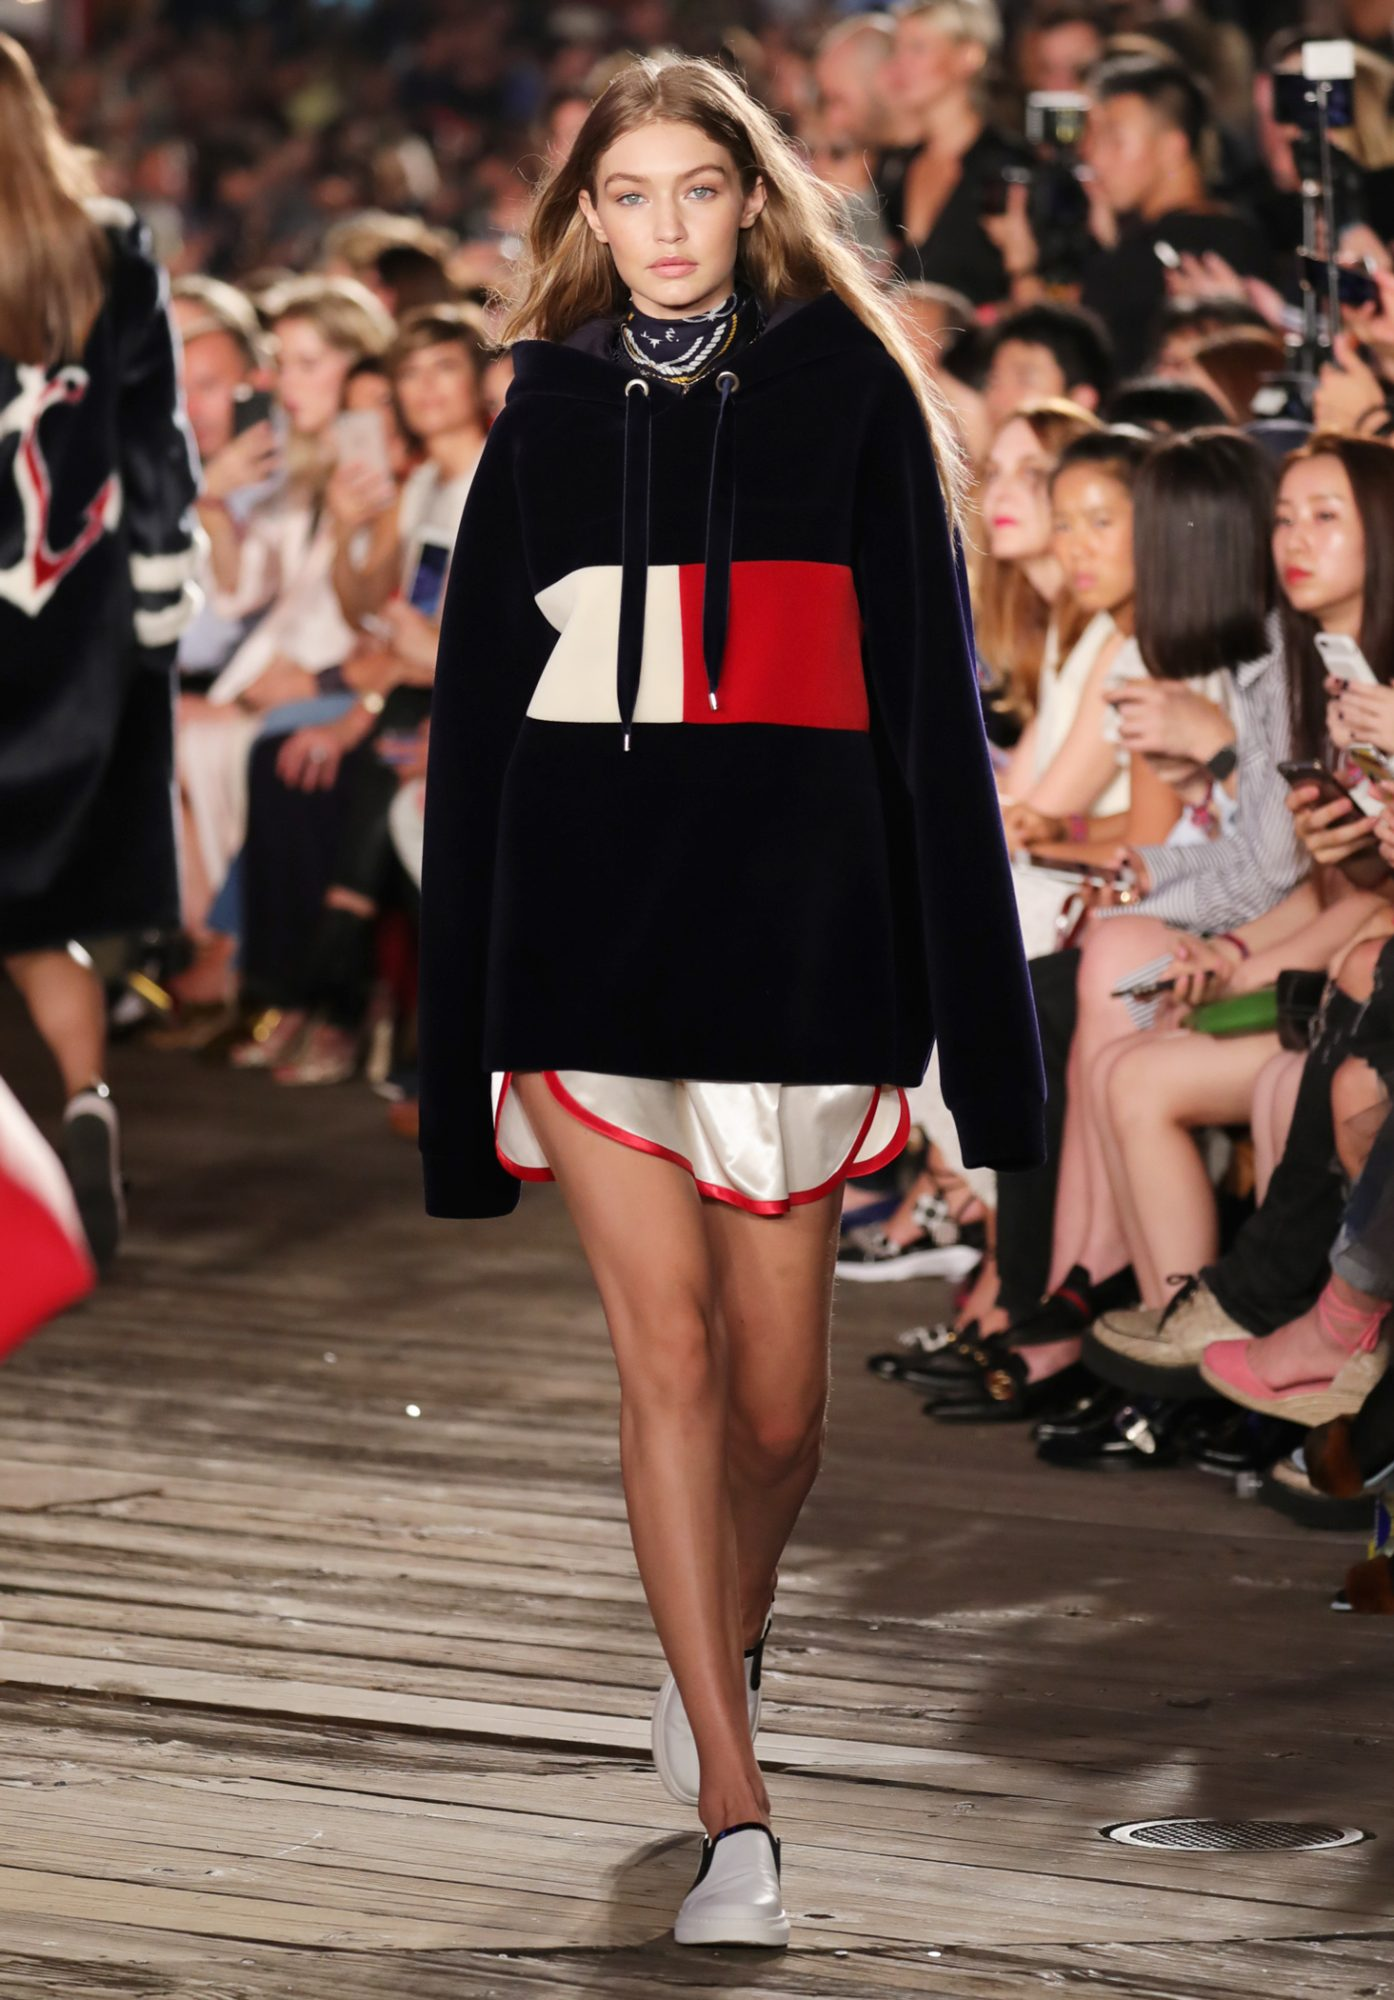 Tommy Hilfiger - Gigi Hadid - Look 2 - NYFW September 9, 2016